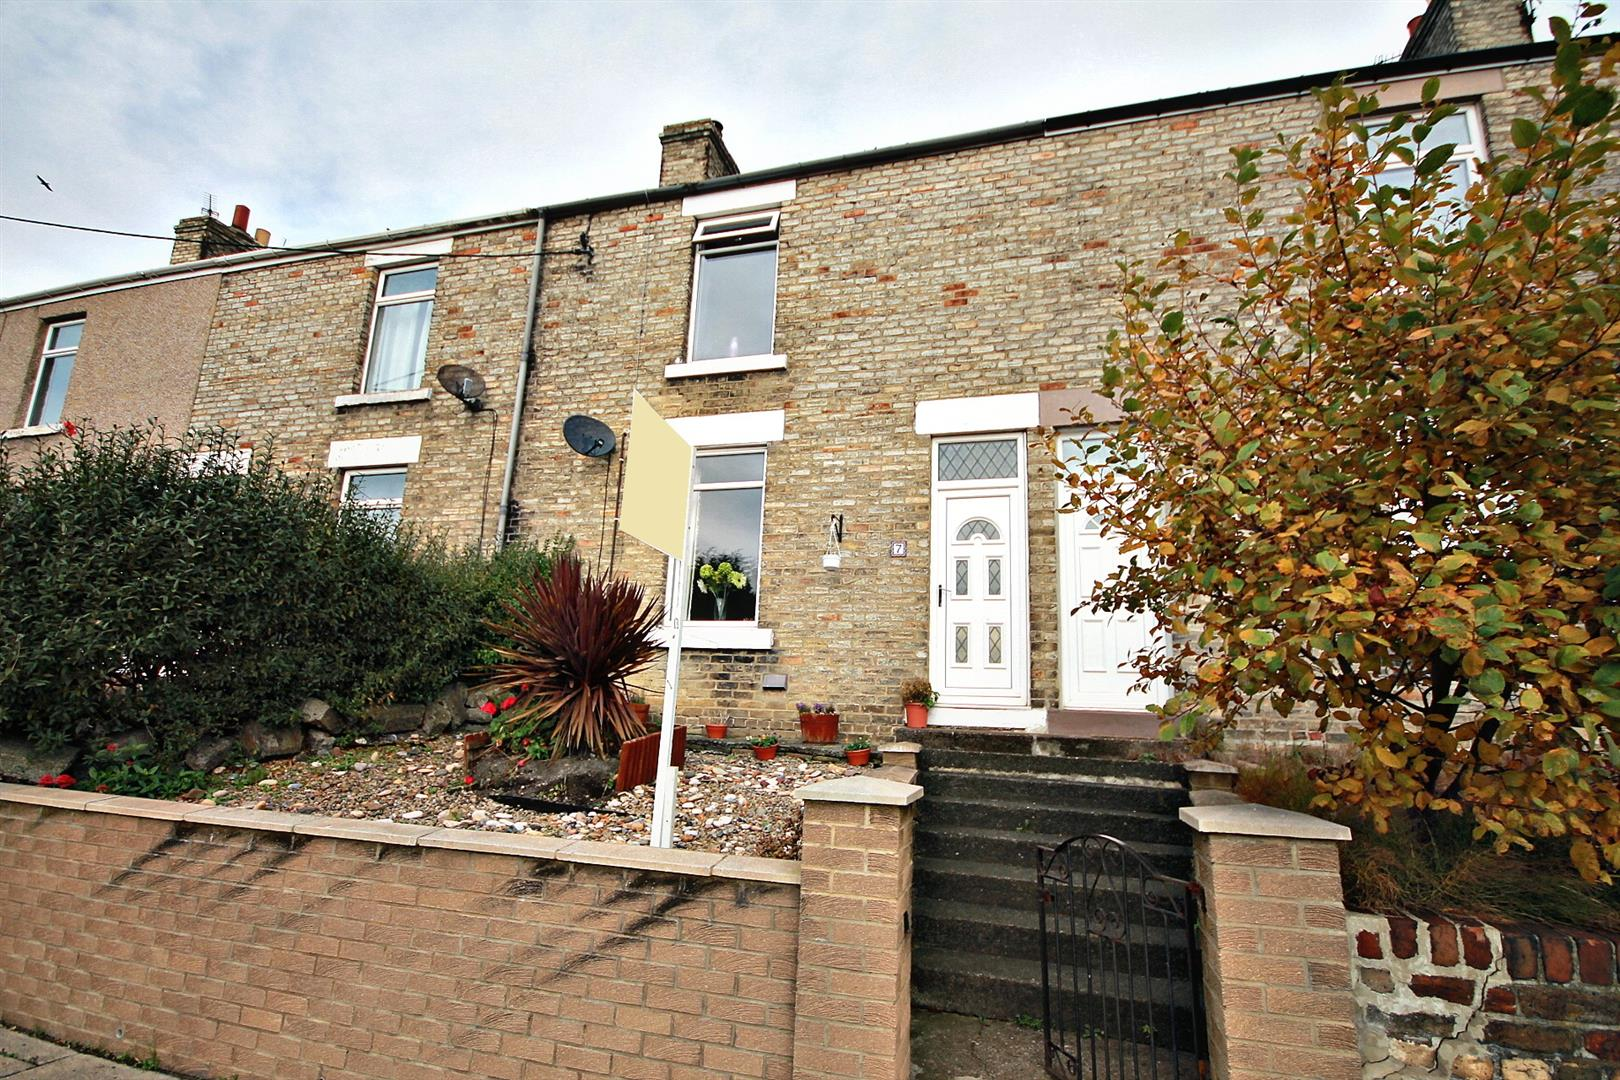 2 Bedrooms Terraced House for sale in South View, Ushaw Moor, Durham